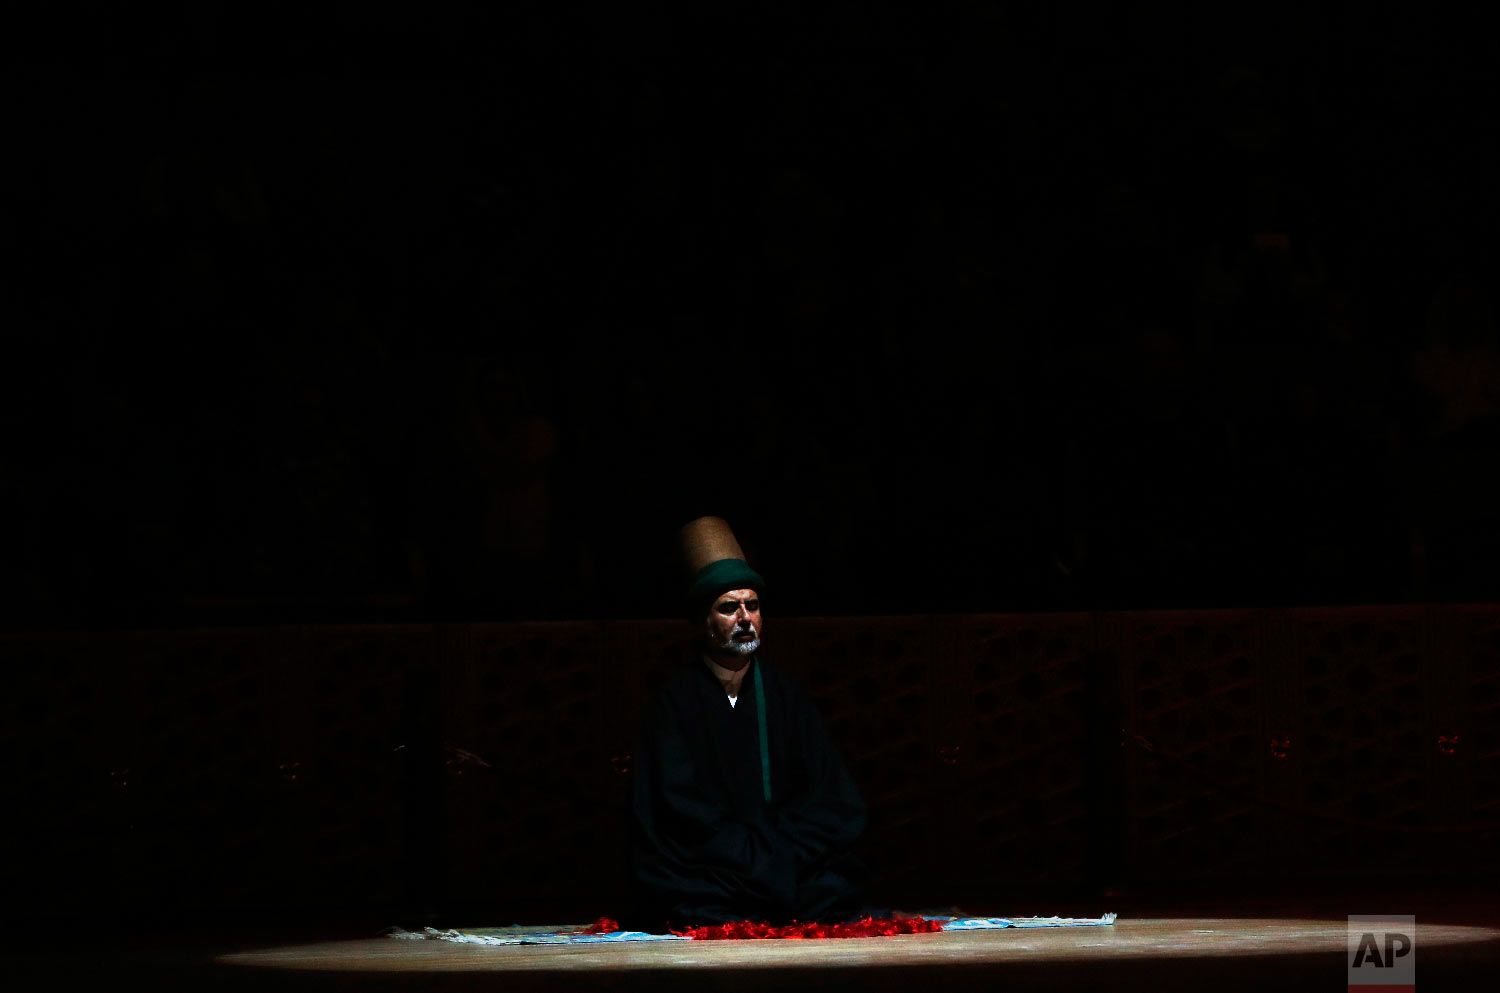 A sheikh of the Mevlevi order of whirling dervishes offers his prayers during a Sheb-i Arus ceremony in Konya, central Turkey, Sunday, Dec. 16, 2018. (AP Photo/Lefteris Pitarakis)